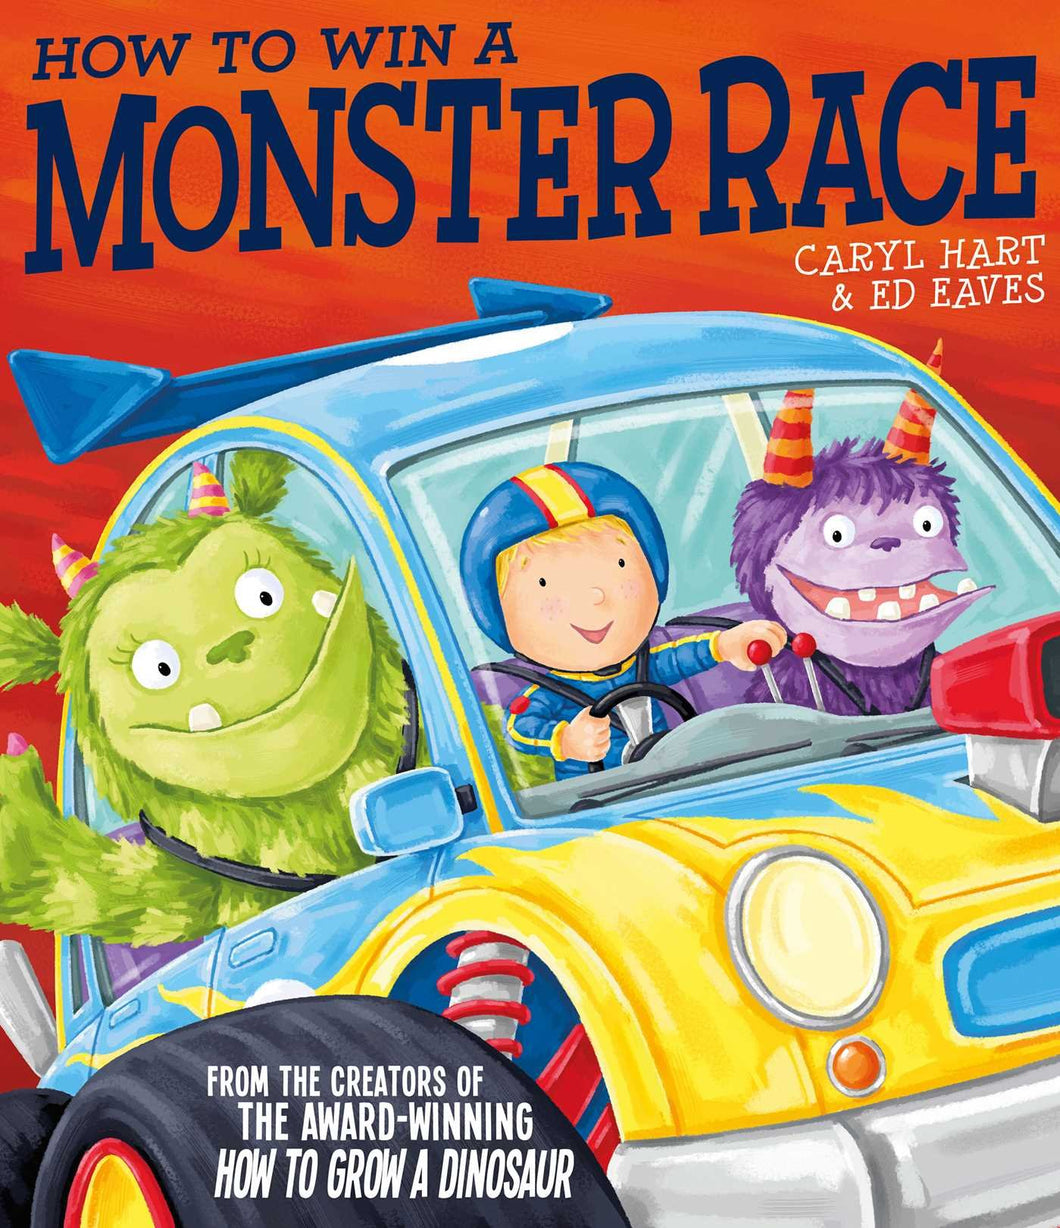 How to Win a Monster Race